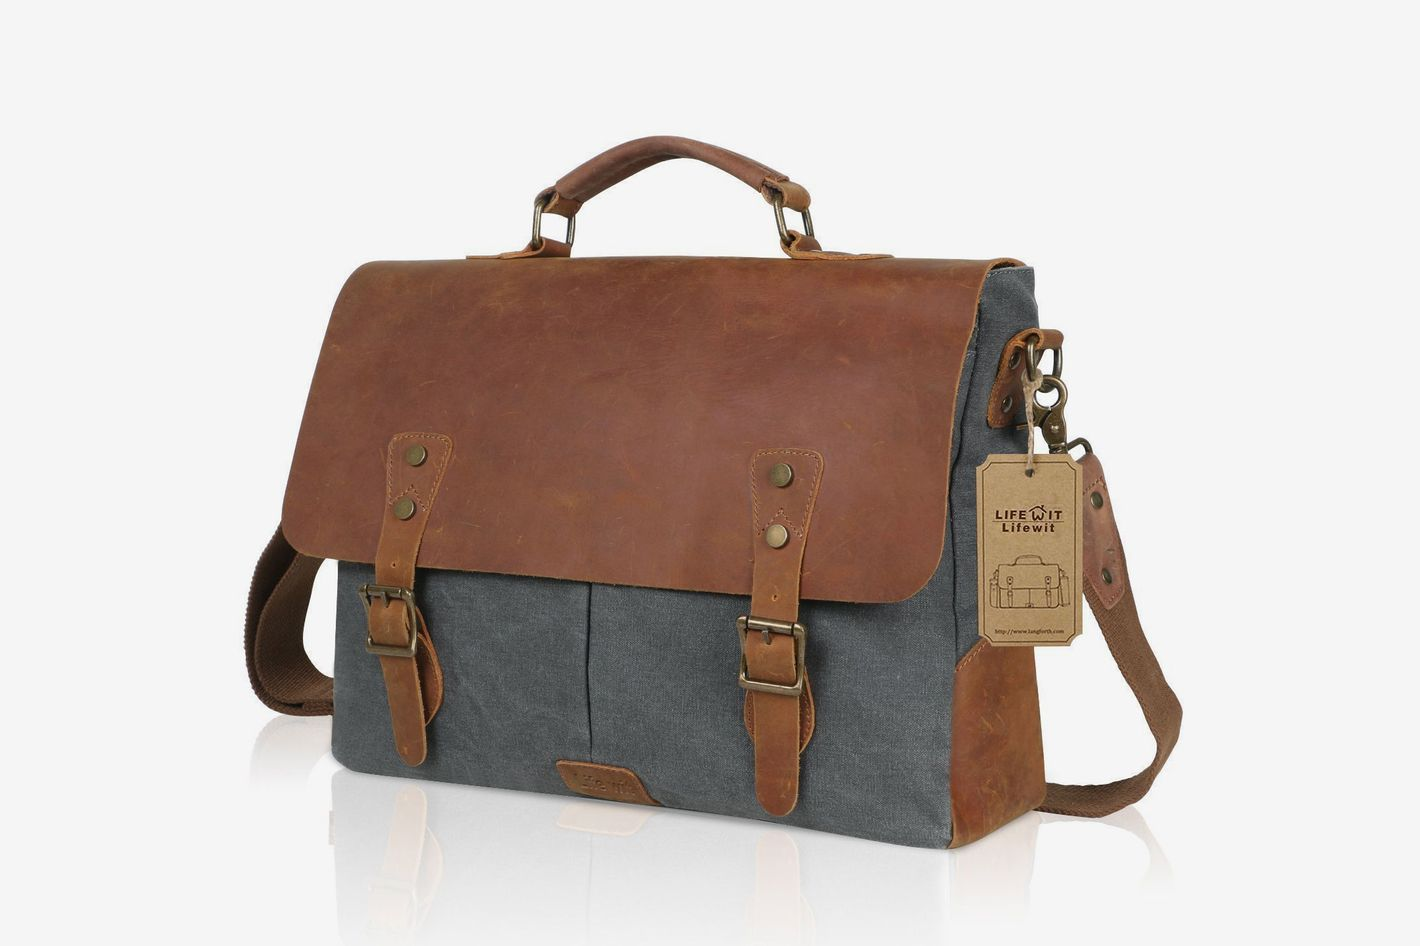 48bffecdf3 11 Best Messenger Bags for Men 2018